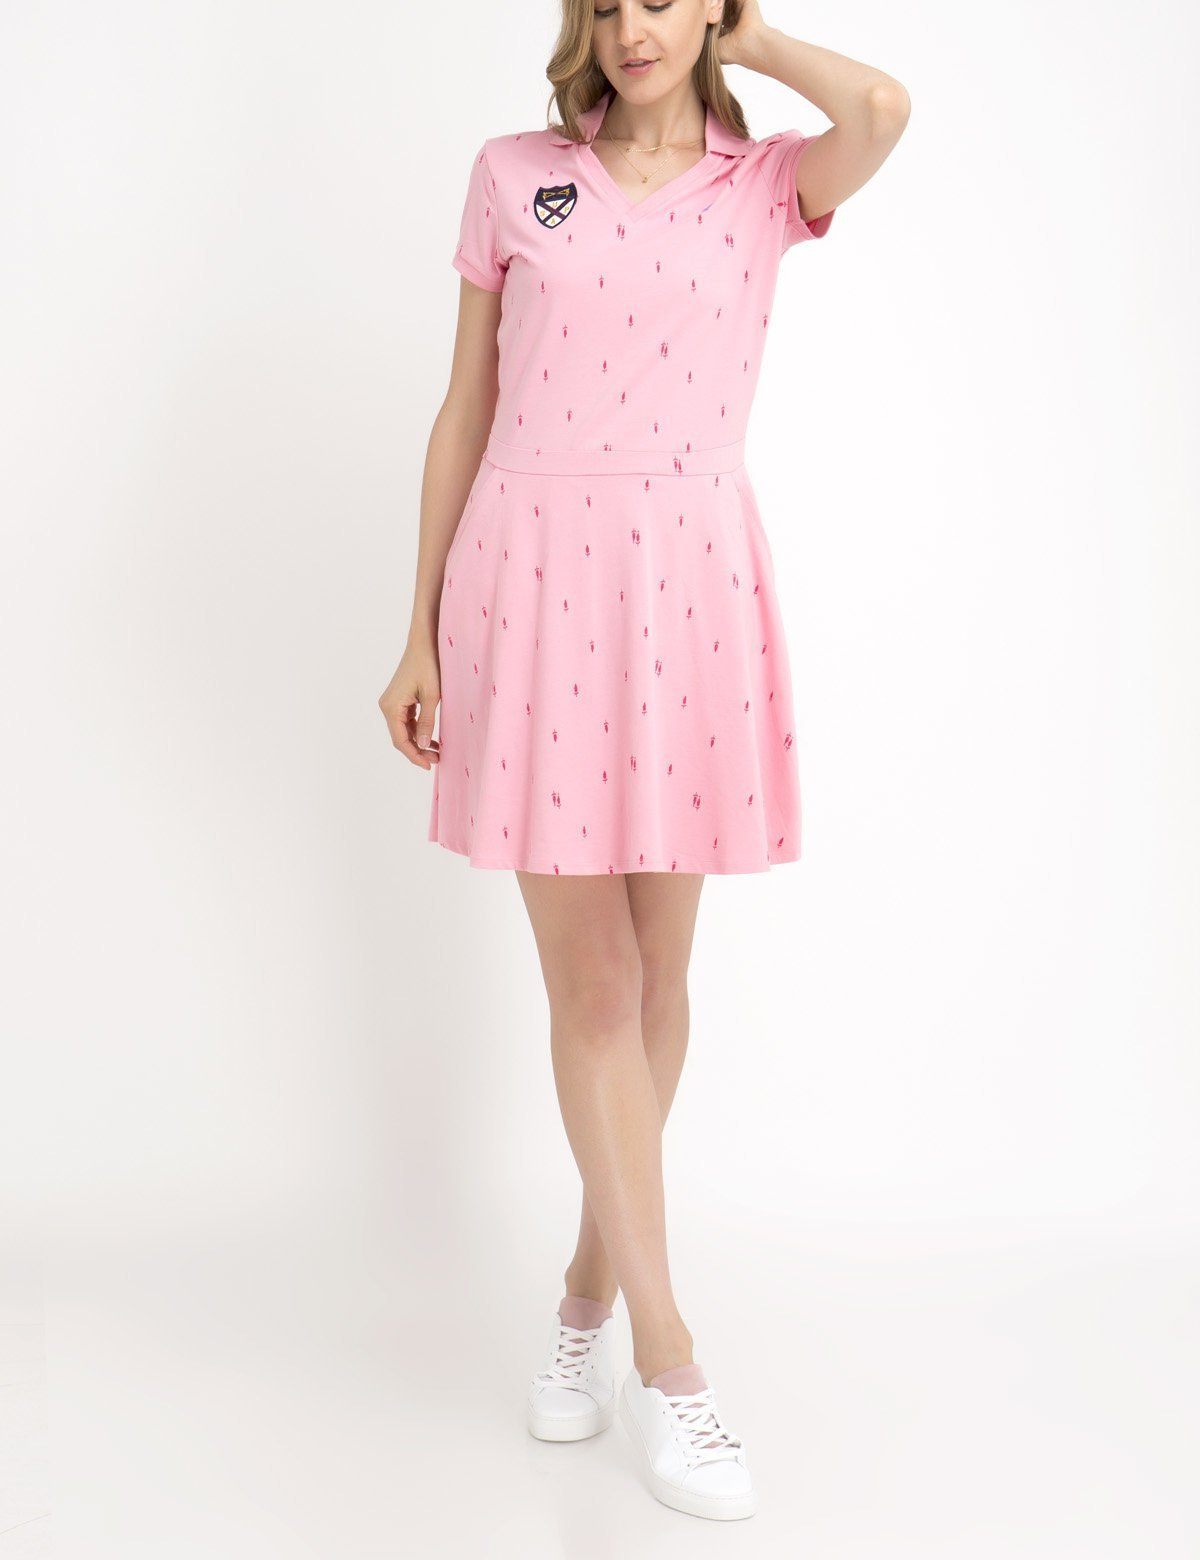 PRINTED V-NECK POCKET DRESS - U.S. Polo Assn.